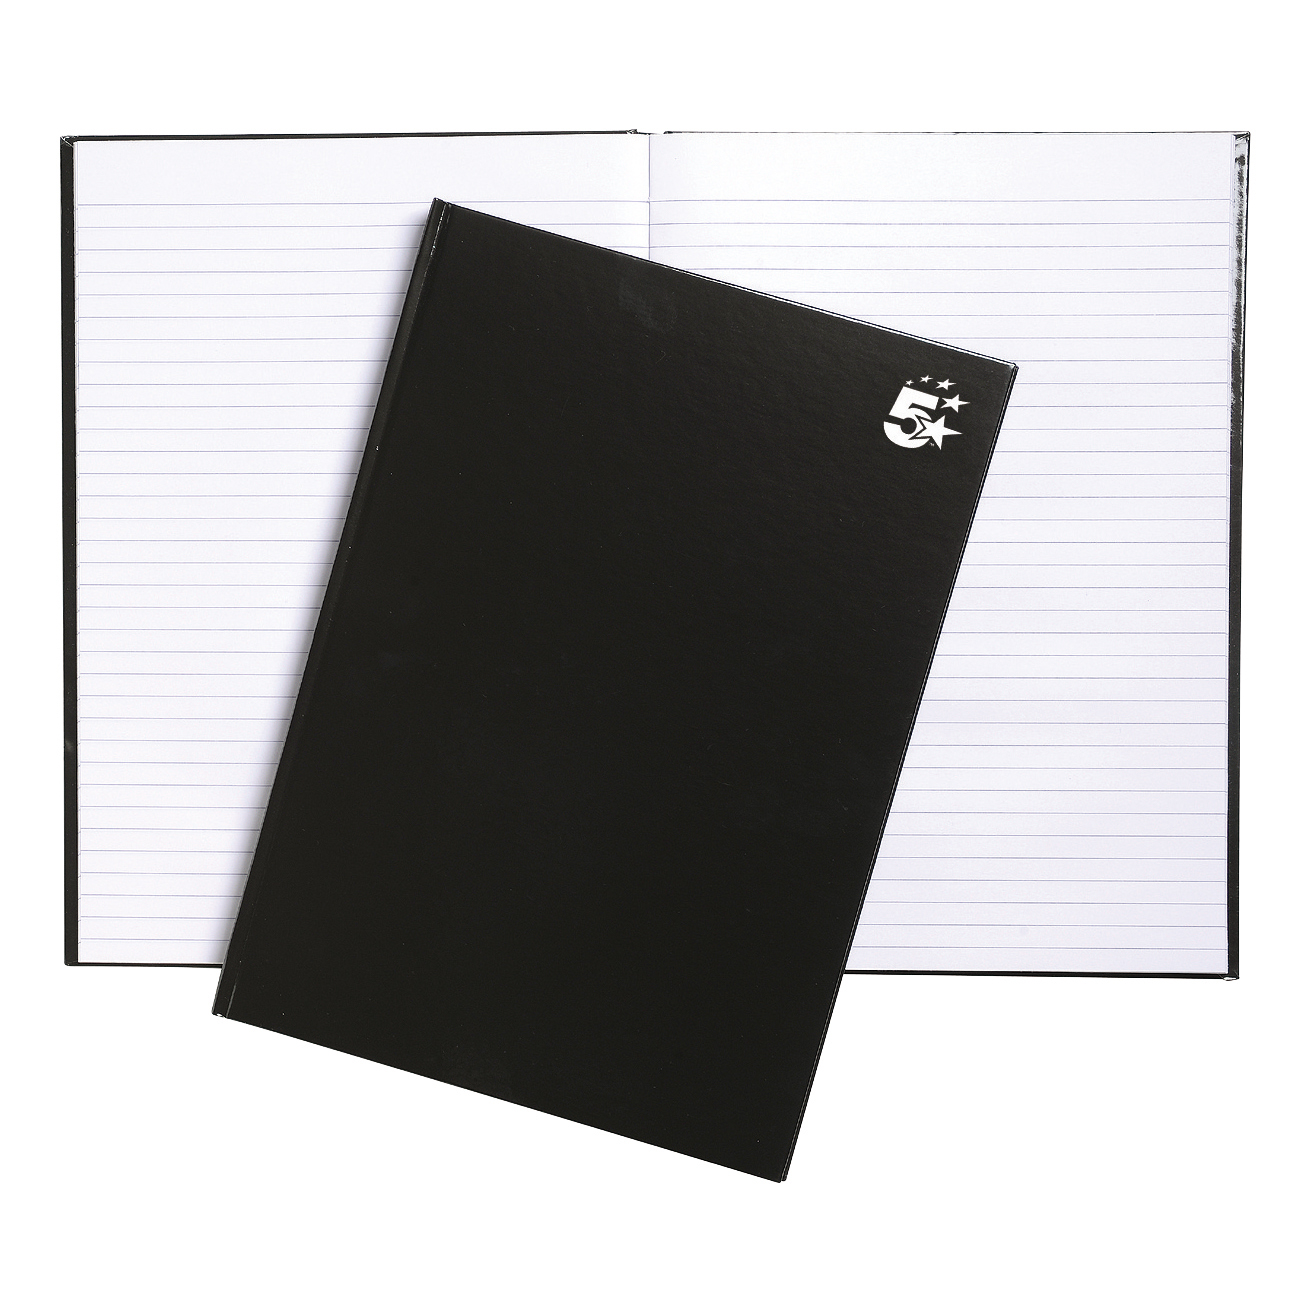 5 Star Office Notebook Casebound 75gsm Ruled 160pp A4 Black [Pack 5]